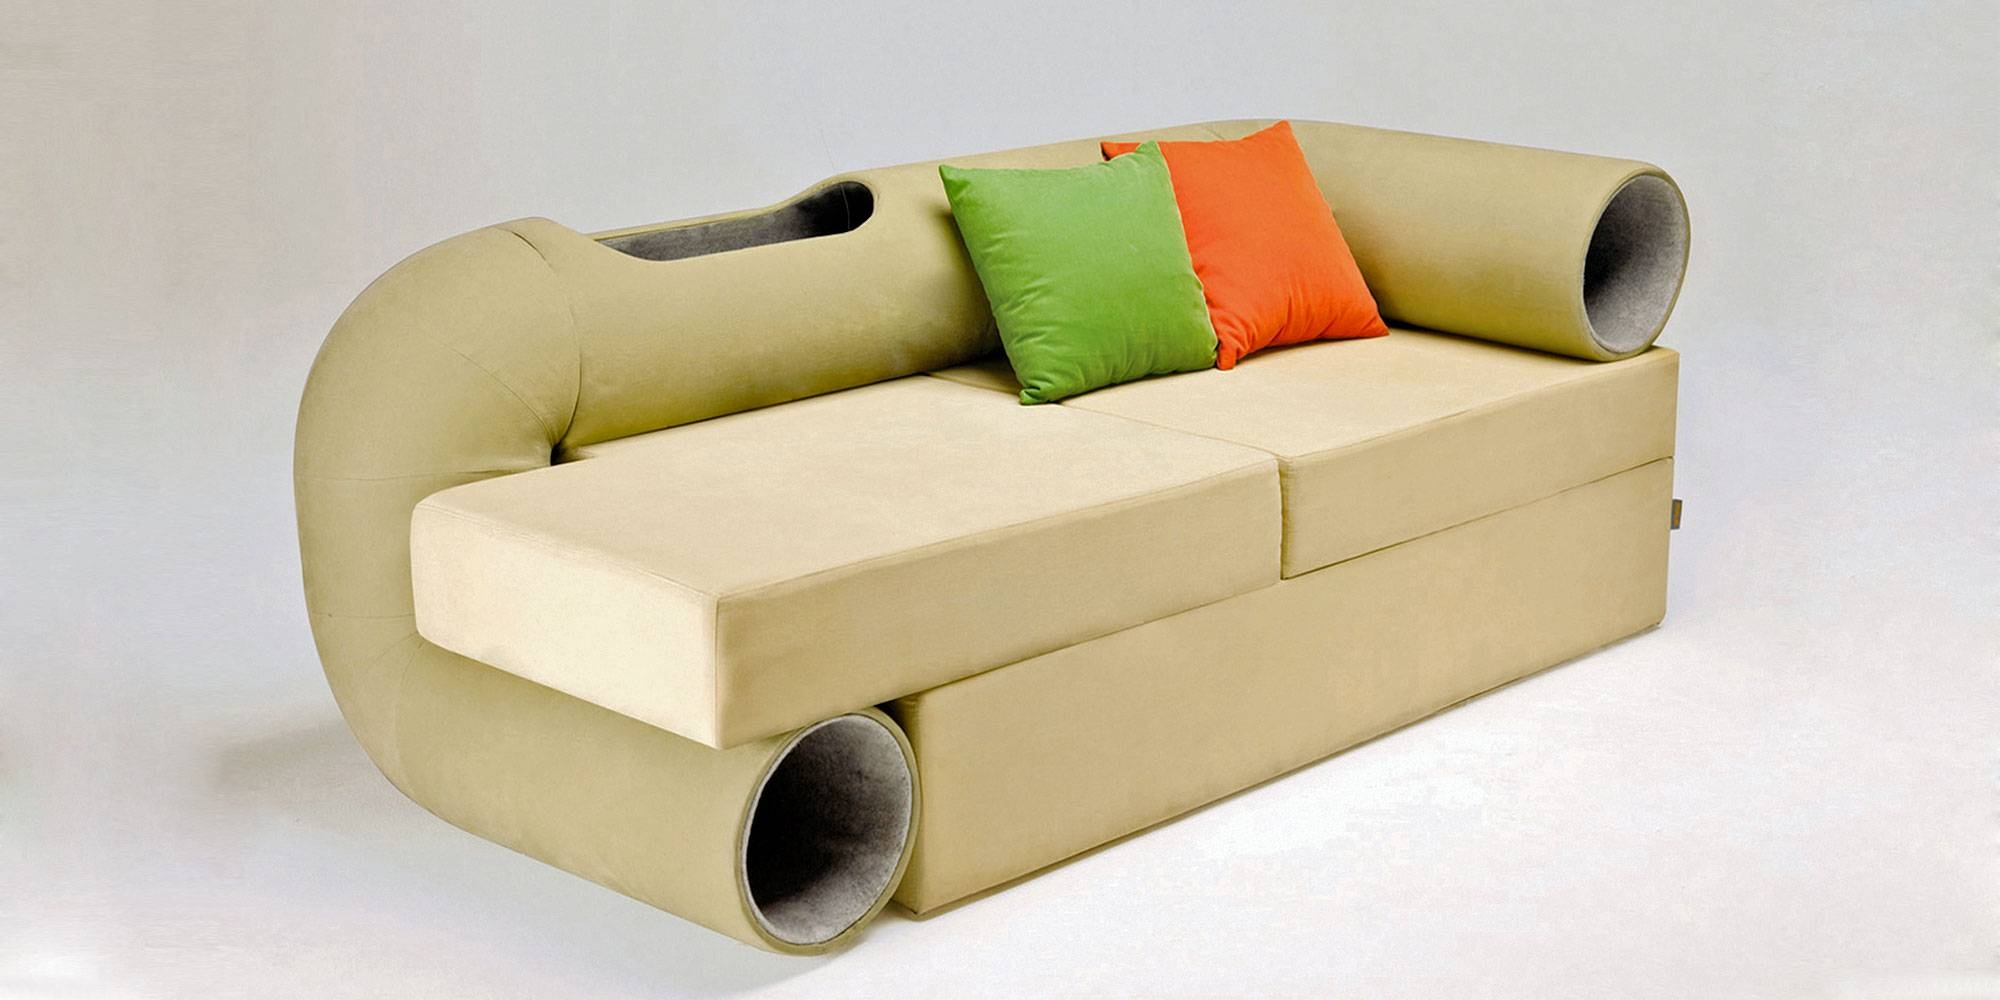 Cat Tunnel Sofa for Cat Tunnel Couches (Image 3 of 15)